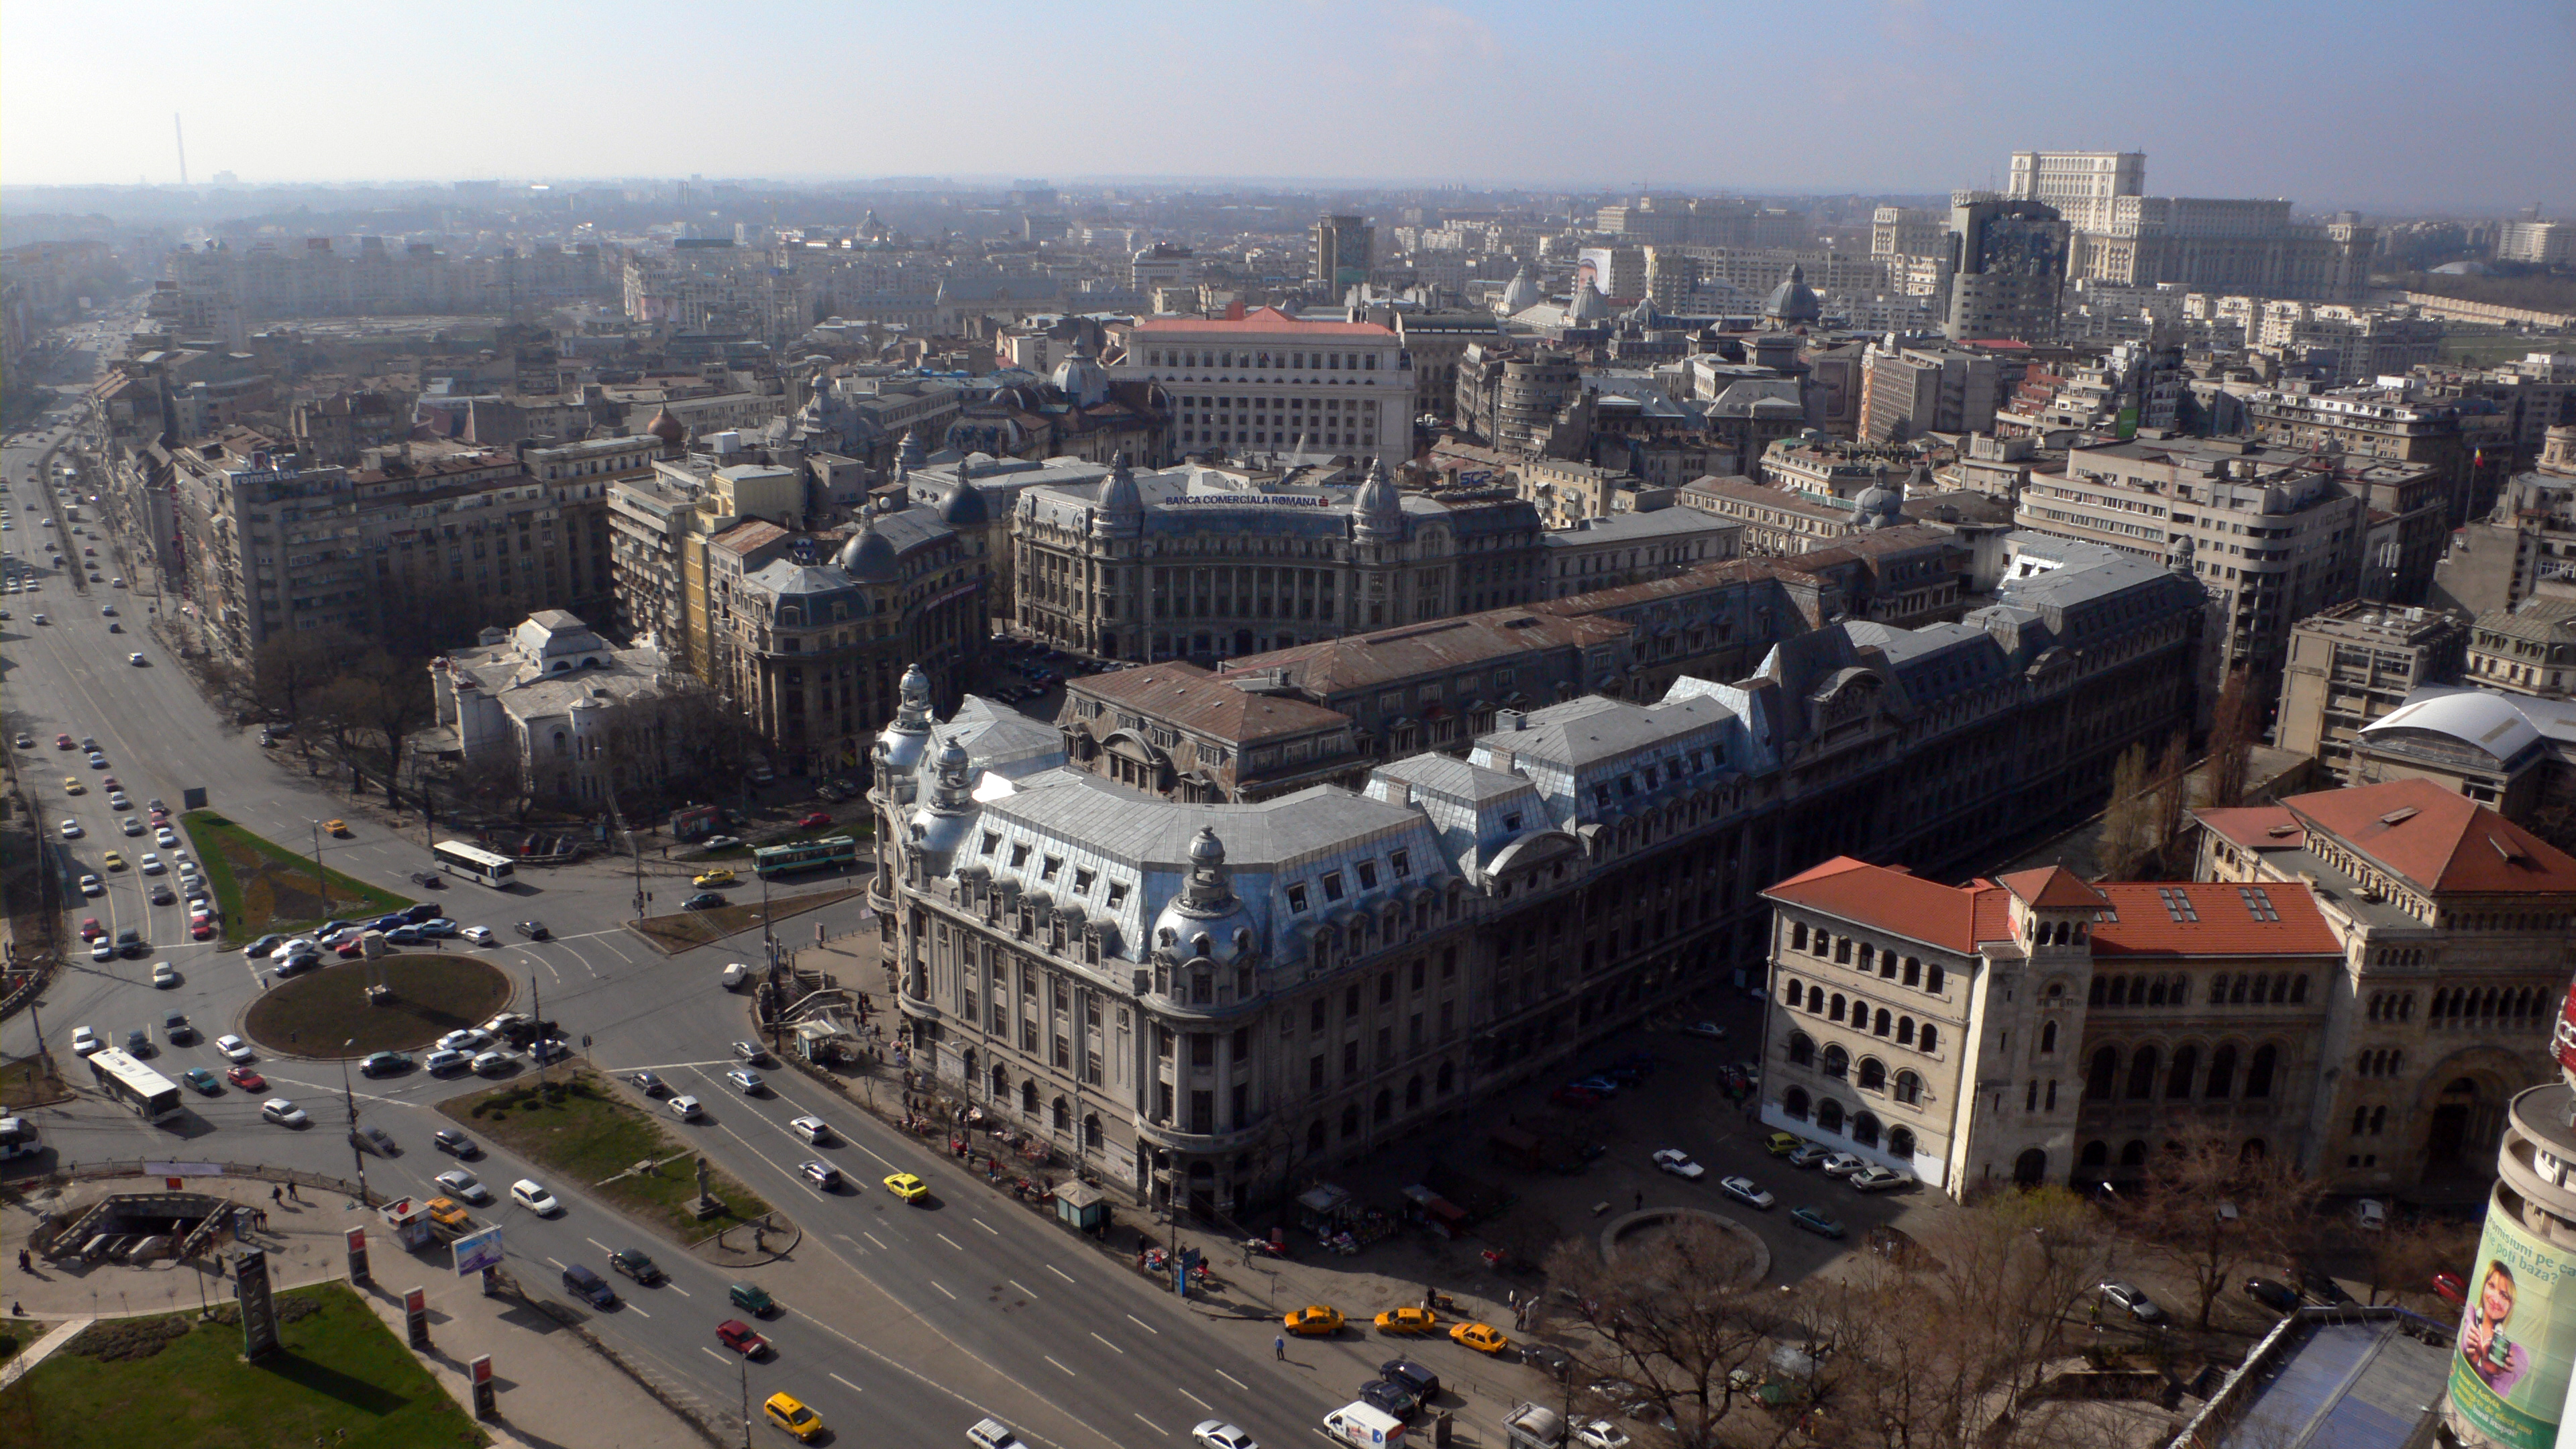 Bucharest - City in Romania - Sightseeing and Landmarks - Thousand ... Bucharest